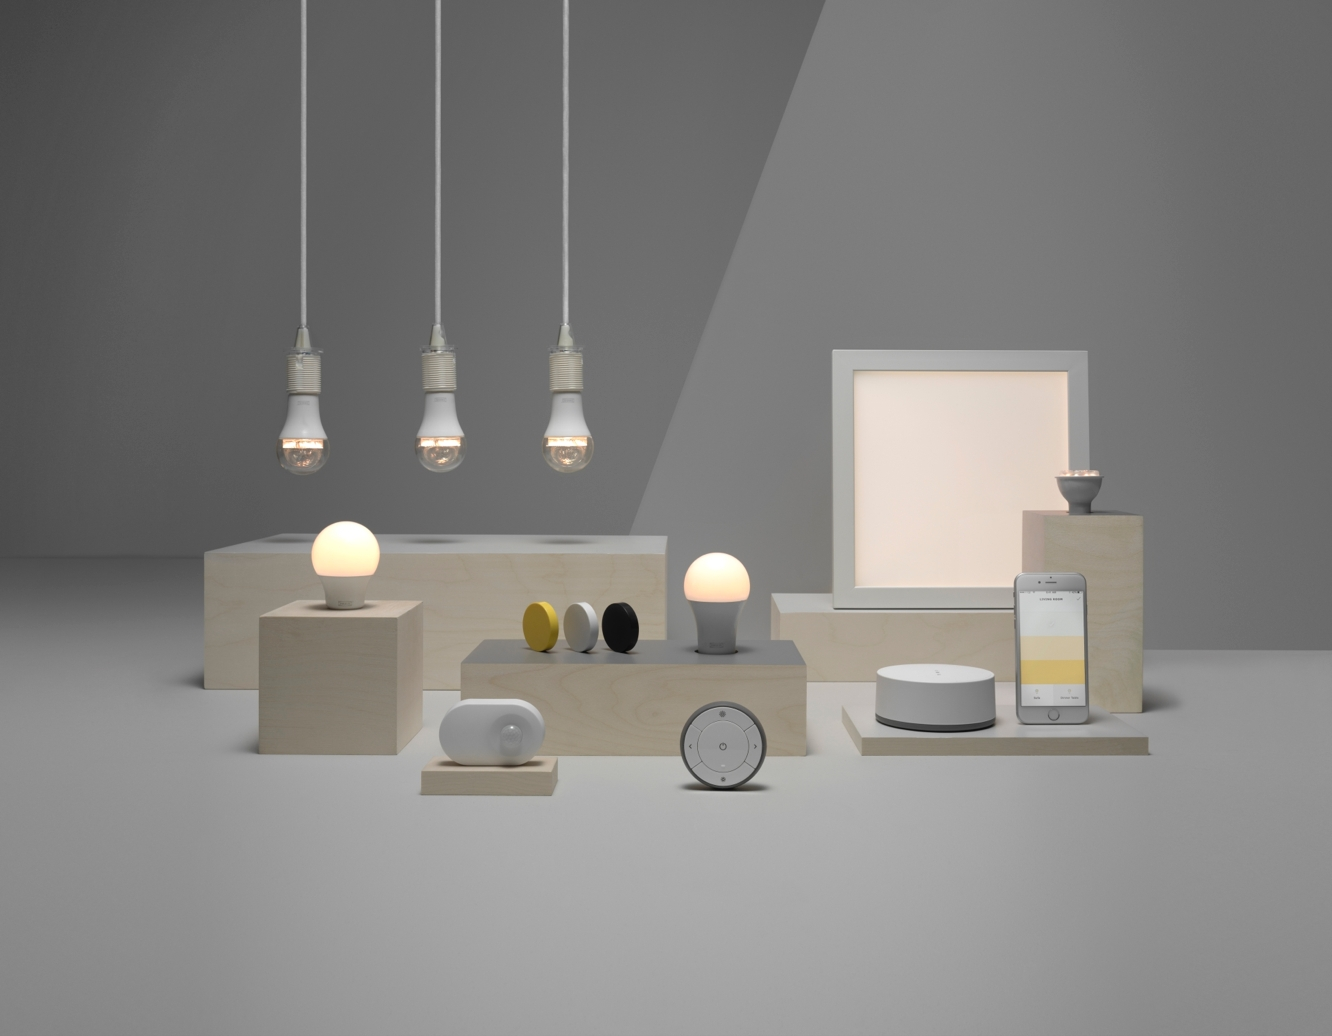 Ikea Tradfri Ikea Releases Update To Make Tradfri Smart Lights Homekit Compatible